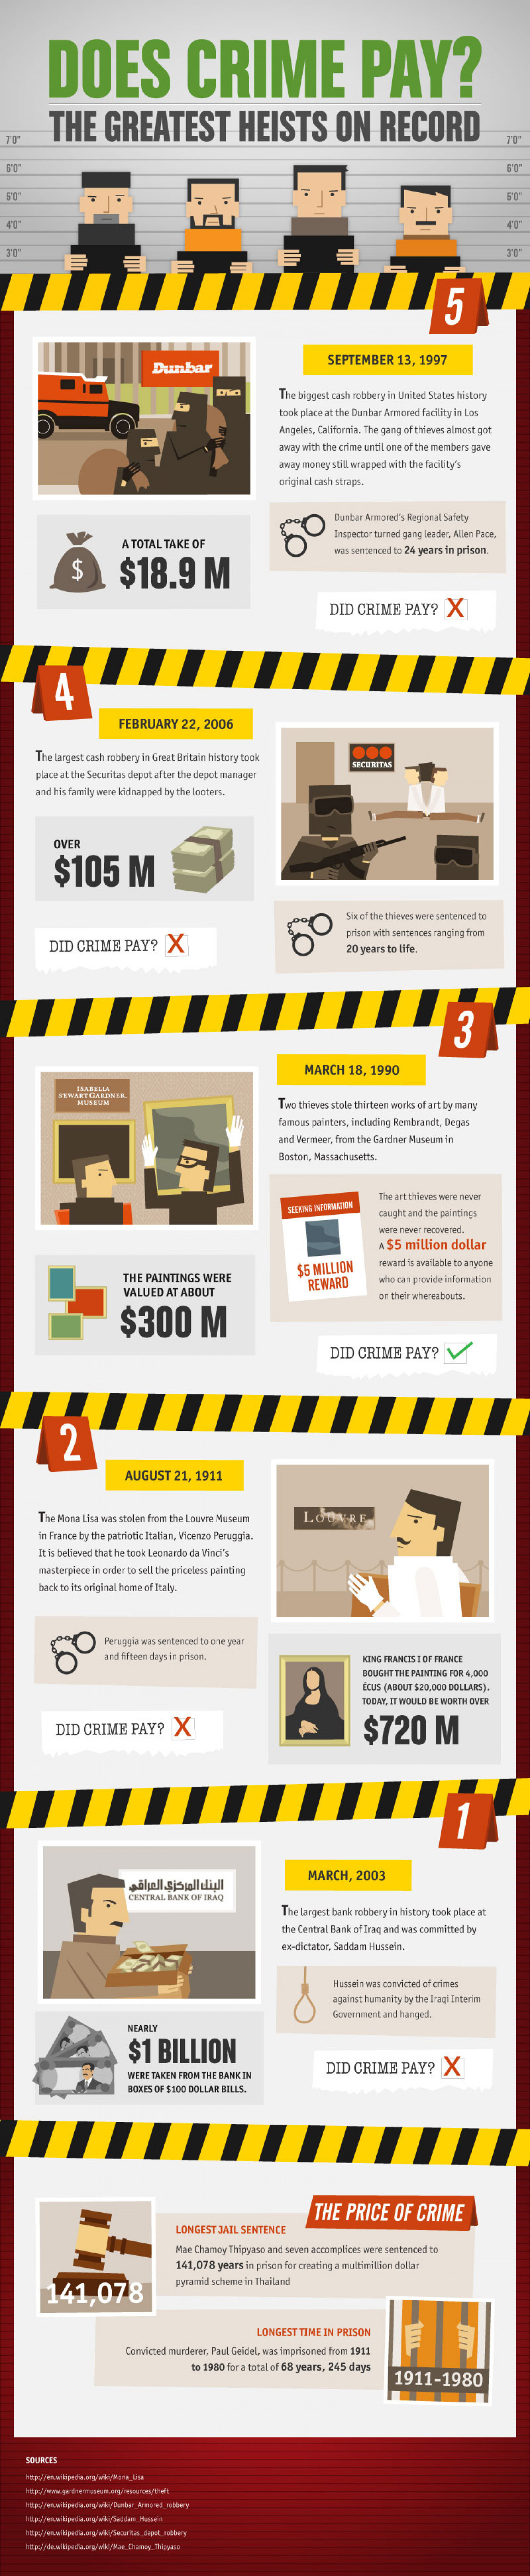 Does Crime Pay? Infographic